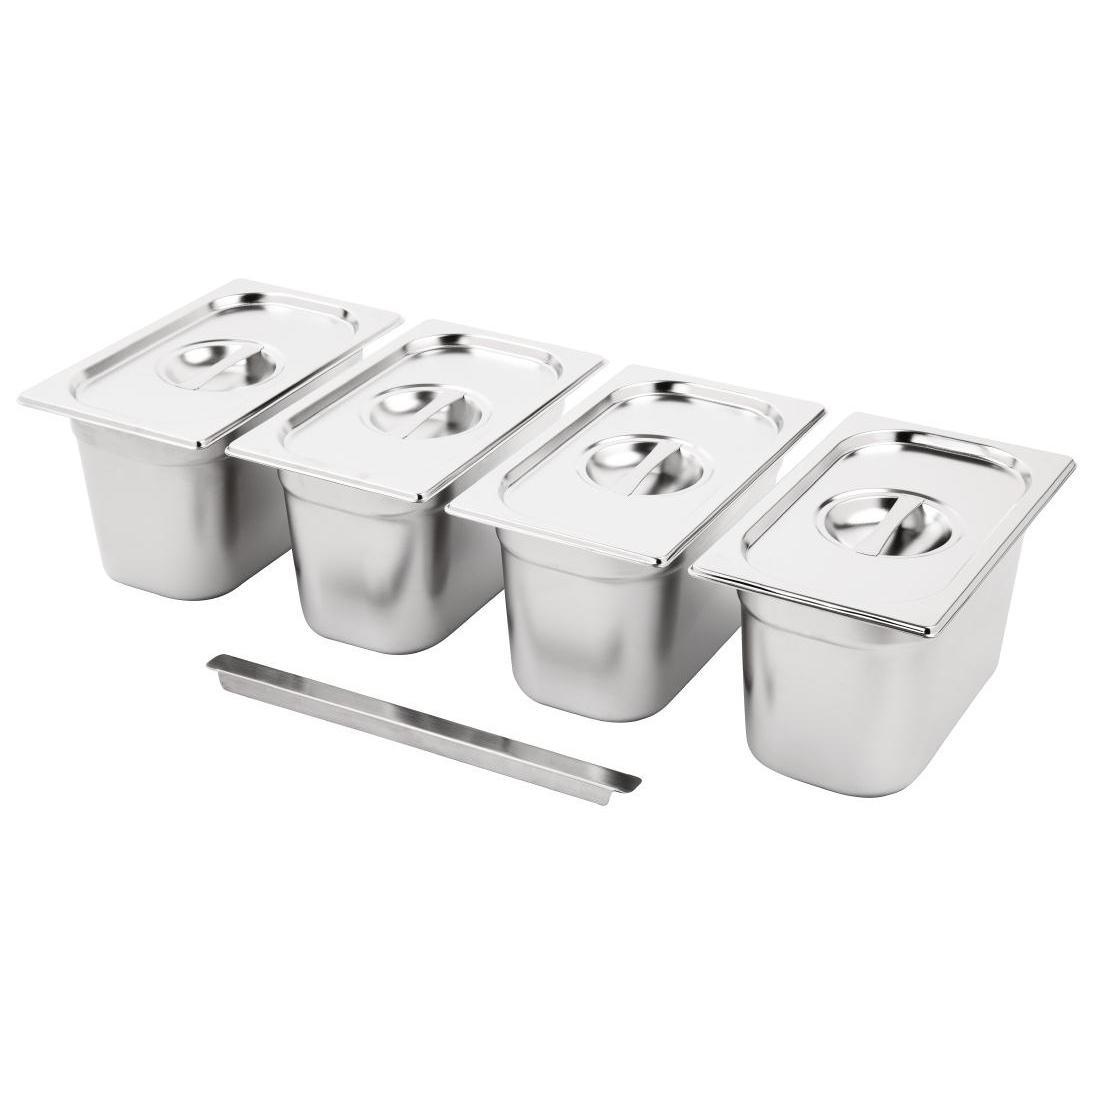 Vogue Stainless Steel Gastronorm Pan Set 4 1/4 with Lids - SA247